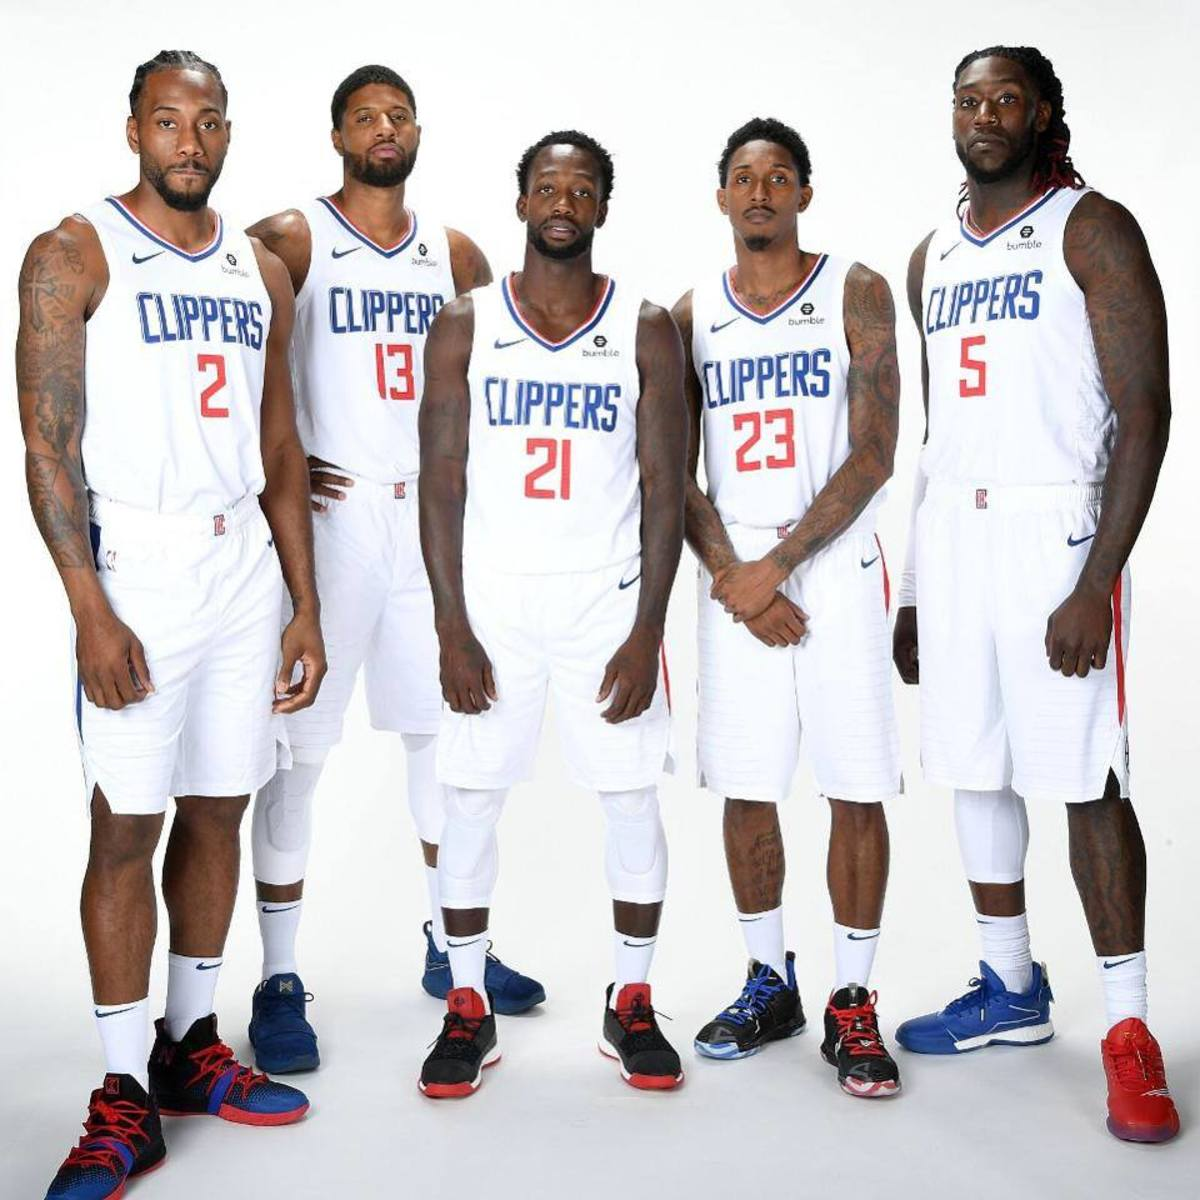 NBA Rumors- Kawhi Leonard Is The Only Untouchable Player On The Clippers This Offseason